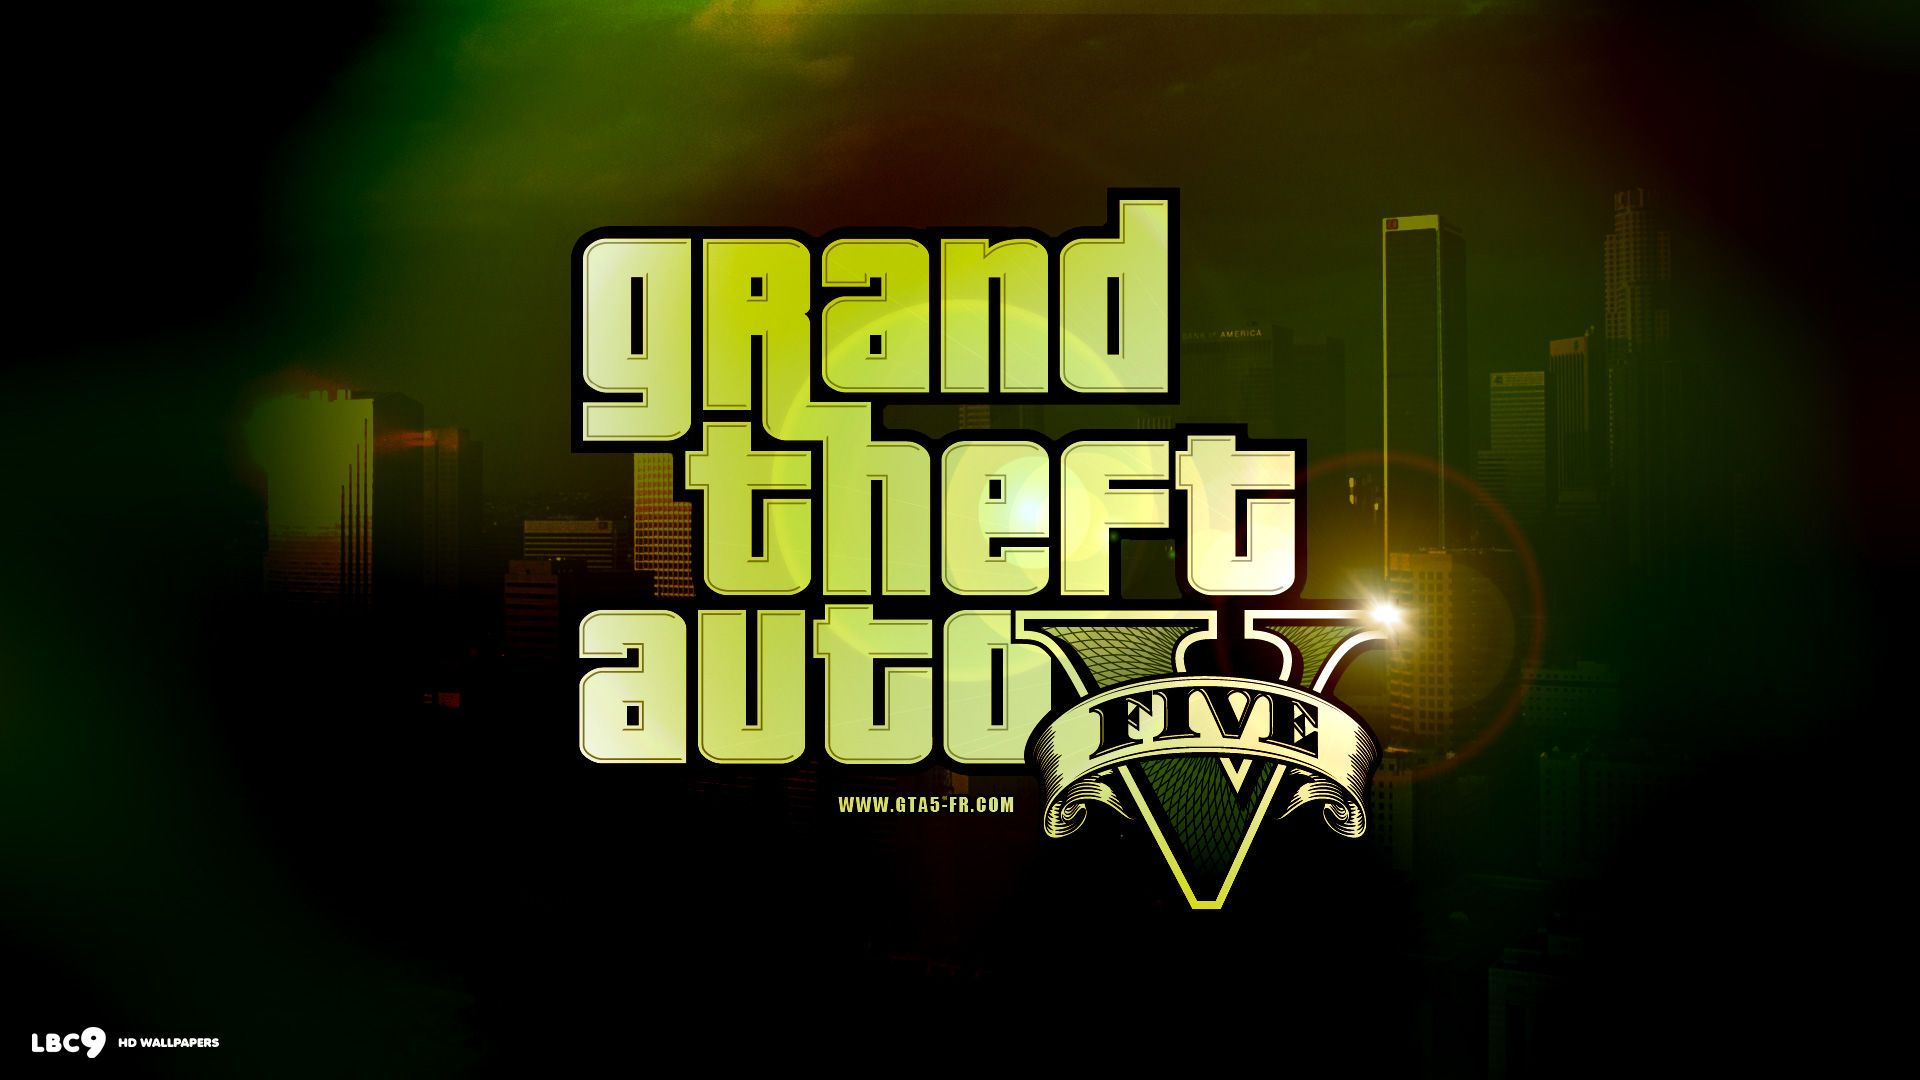 1080p Gta 5 Wallpapers Top Free 1080p Gta 5 Backgrounds